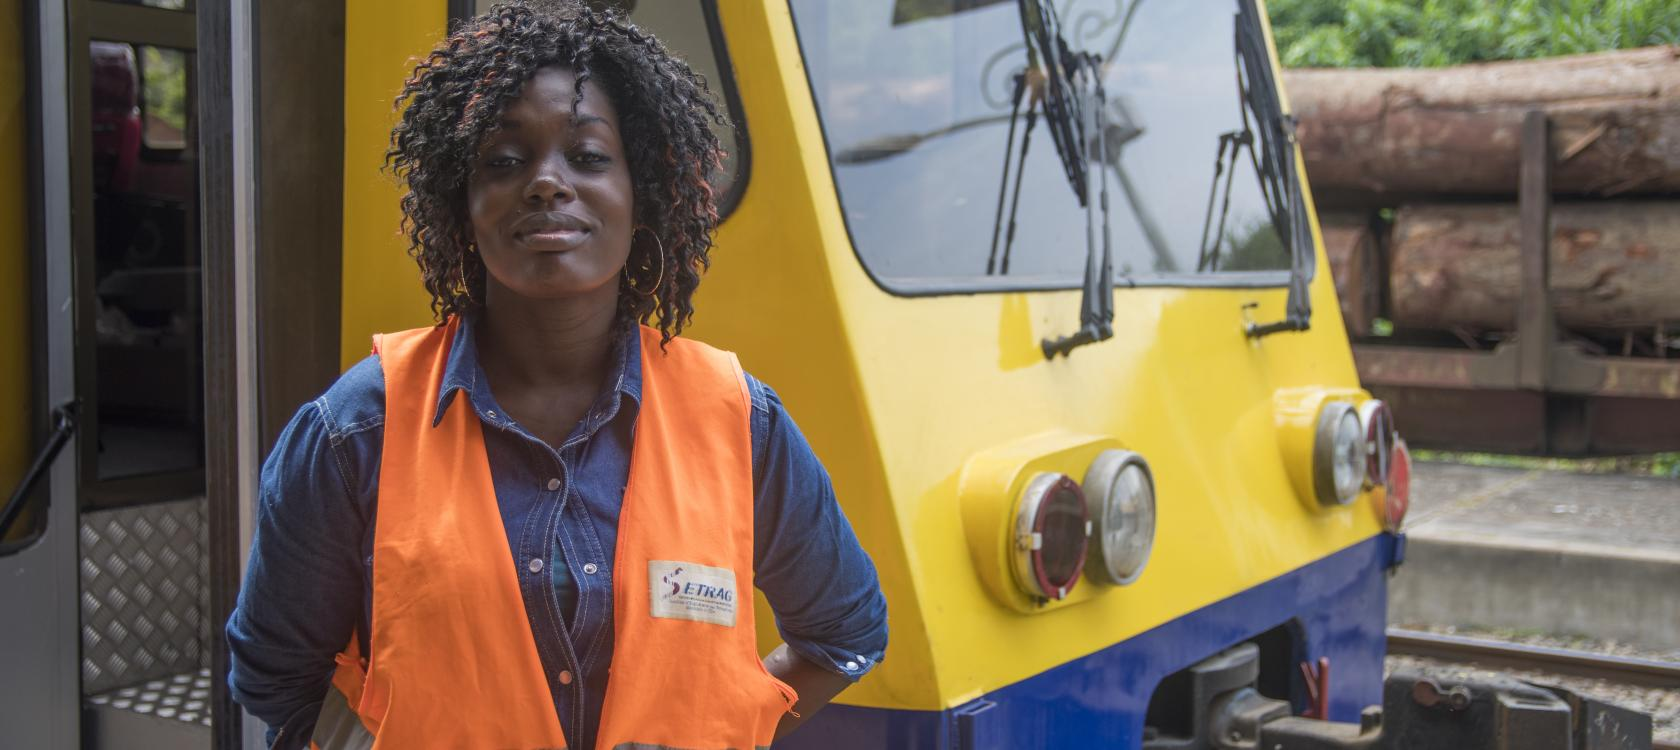 Transgabonais, train, woman, Gabon, transport